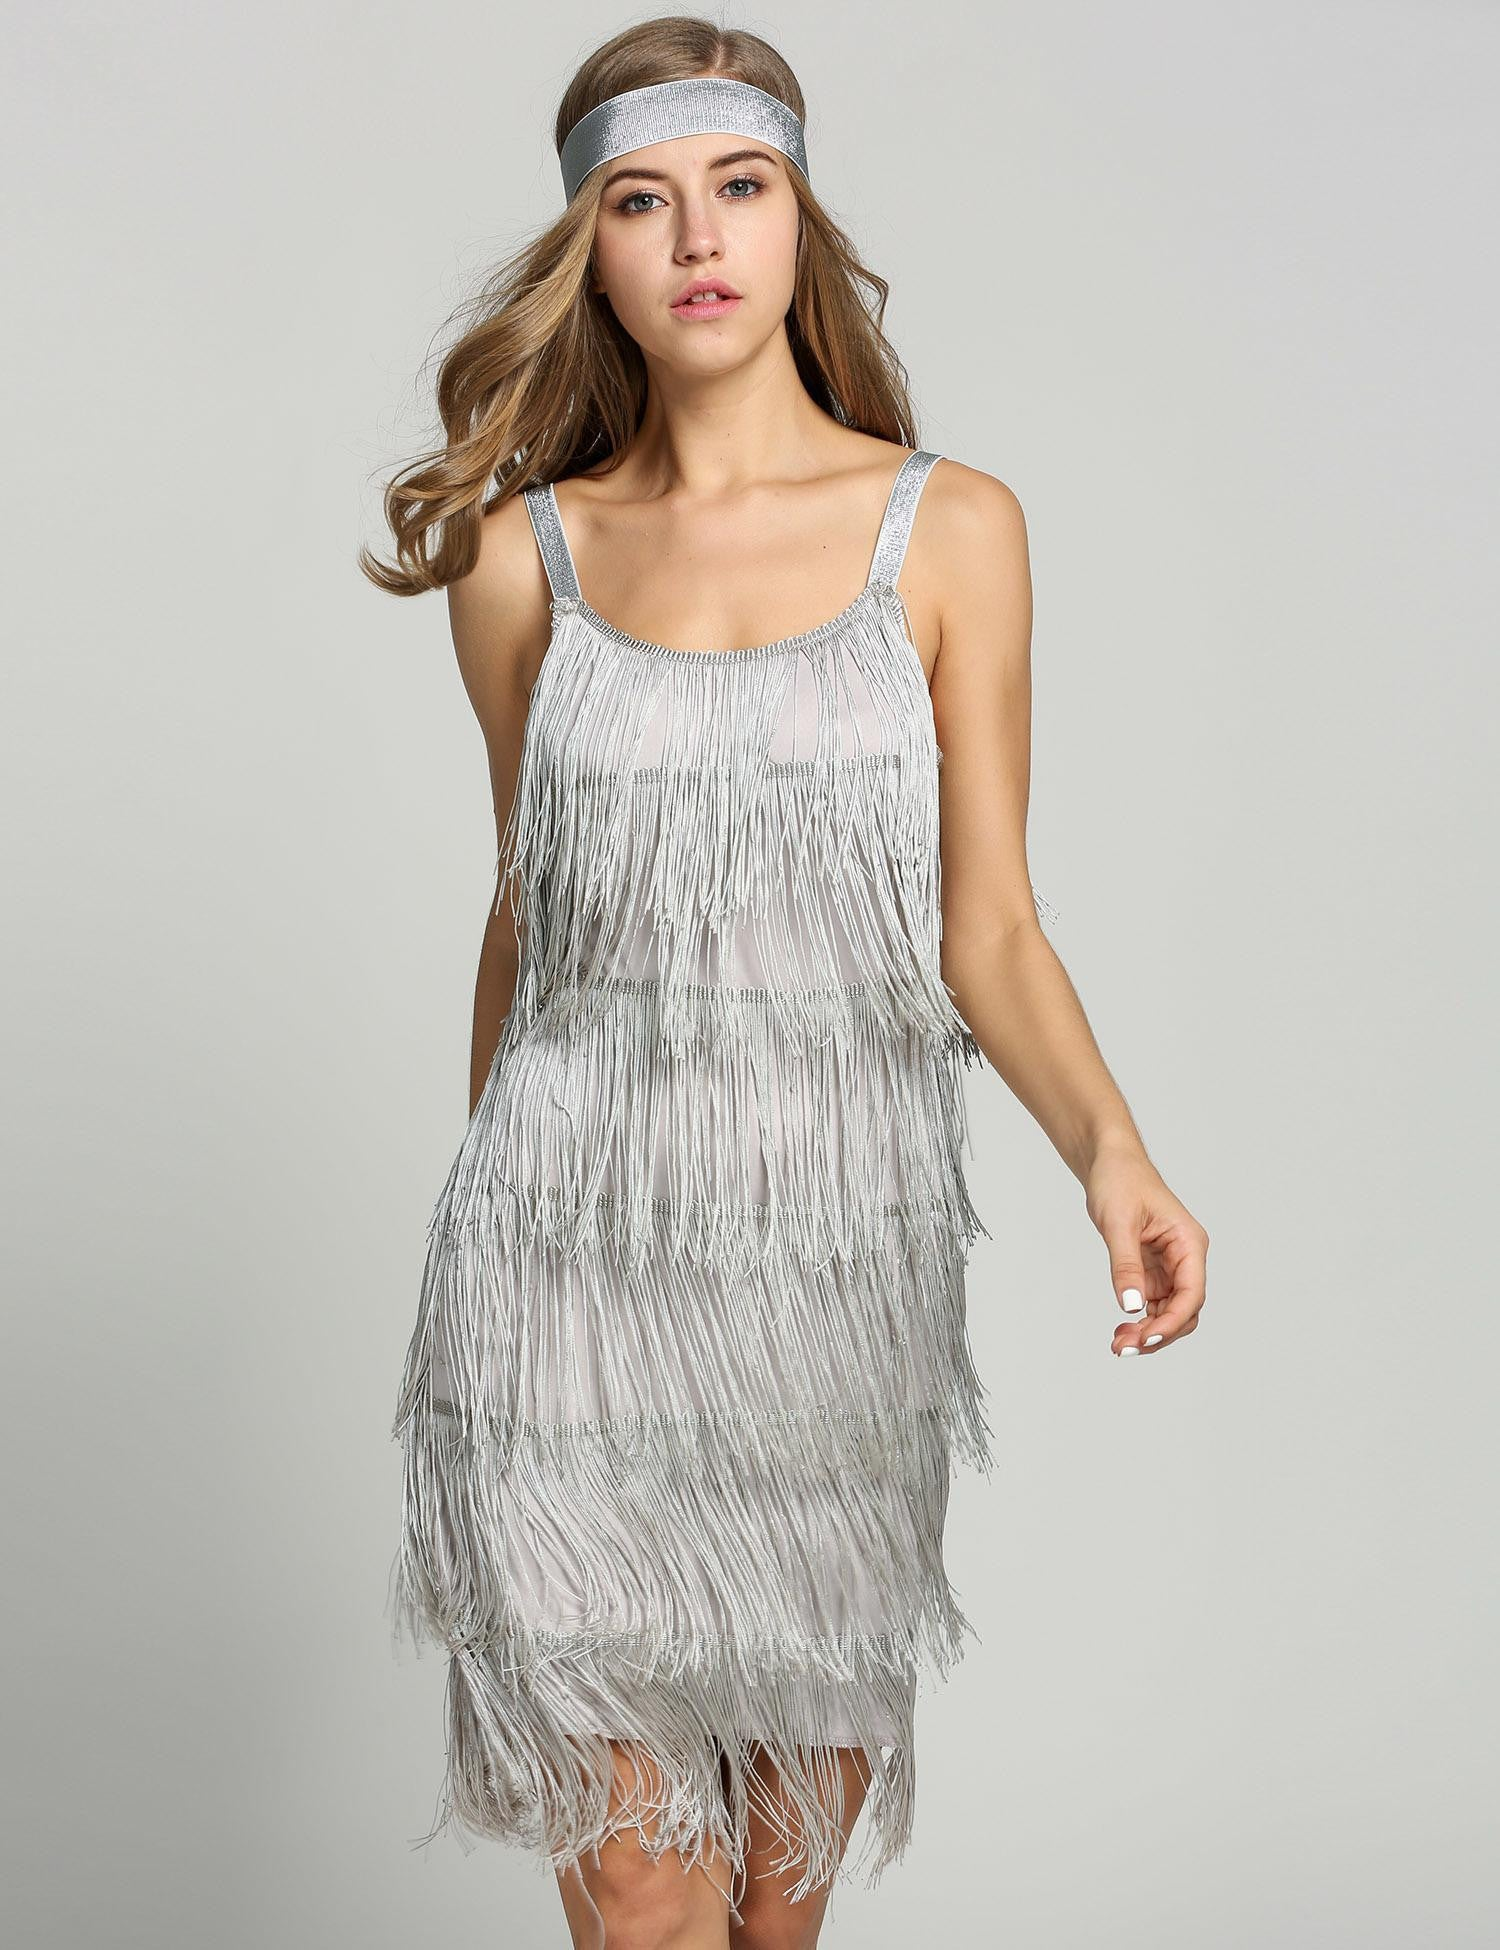 Belted Gray 1920s Fringe Gatsby Dress – Retro Stage - Chic Vintage ...